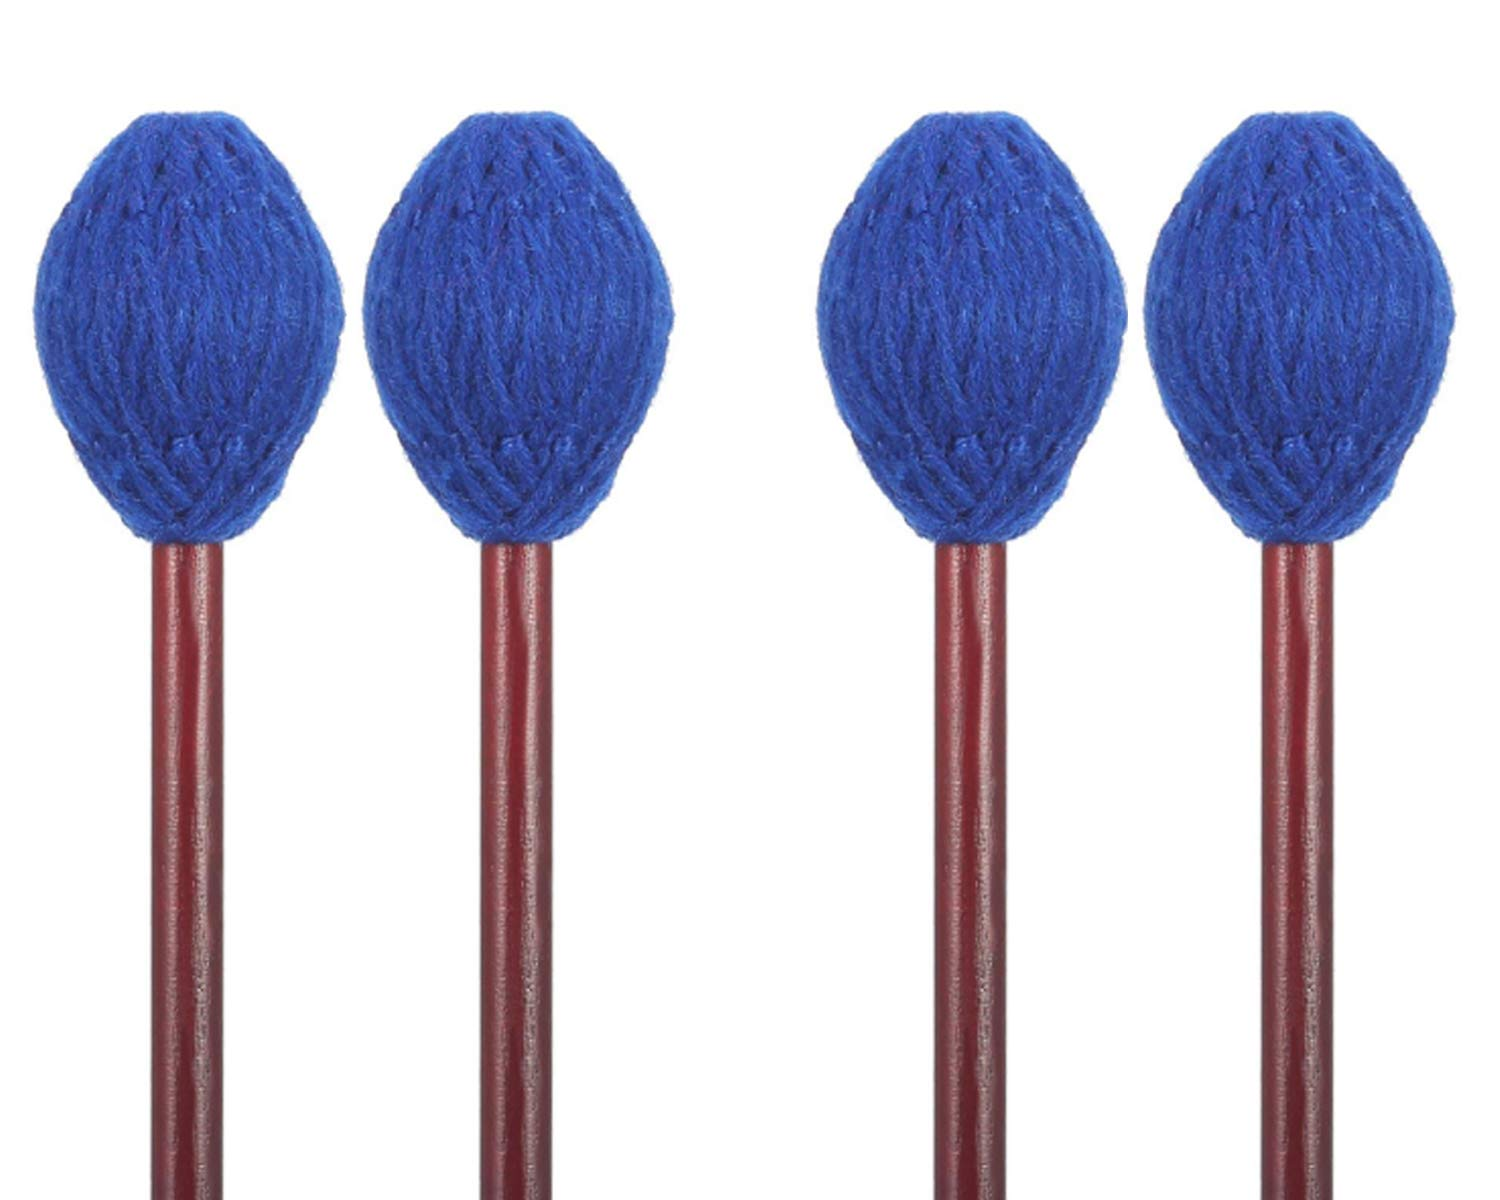 Buytra 2 Pairs Medium Hard Yarn Head Keyboard Marimba Mallets with Maple Handle, Blue by Buytra